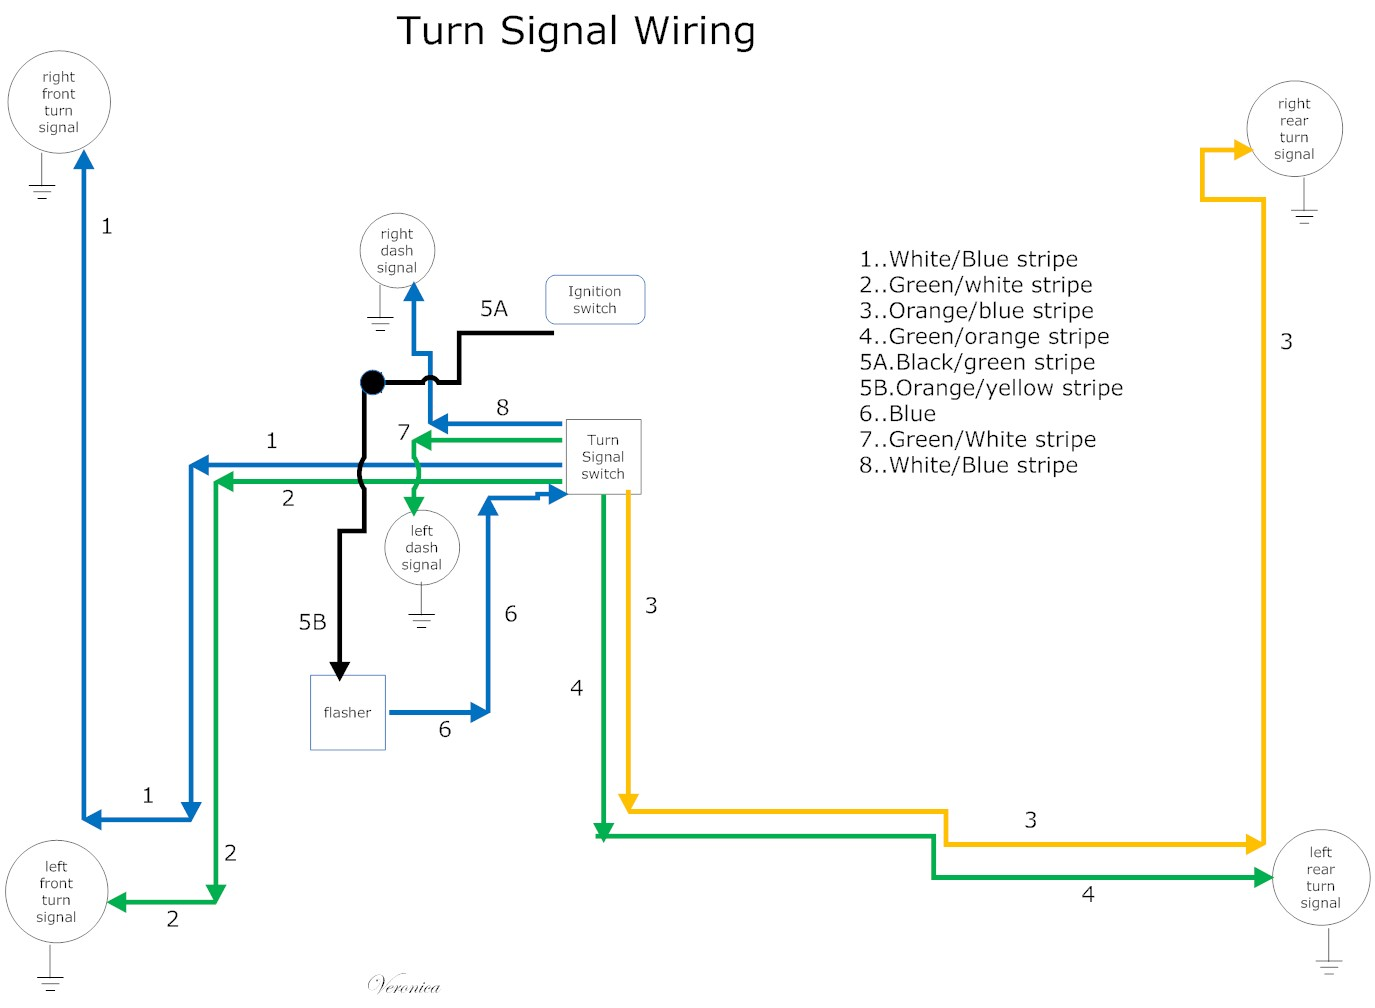 Turn+signal+Wiring turn signal wiring diagram turn signal wiring diagram 05 victory wiring diagram for motorcycle turn signals at beritabola.co